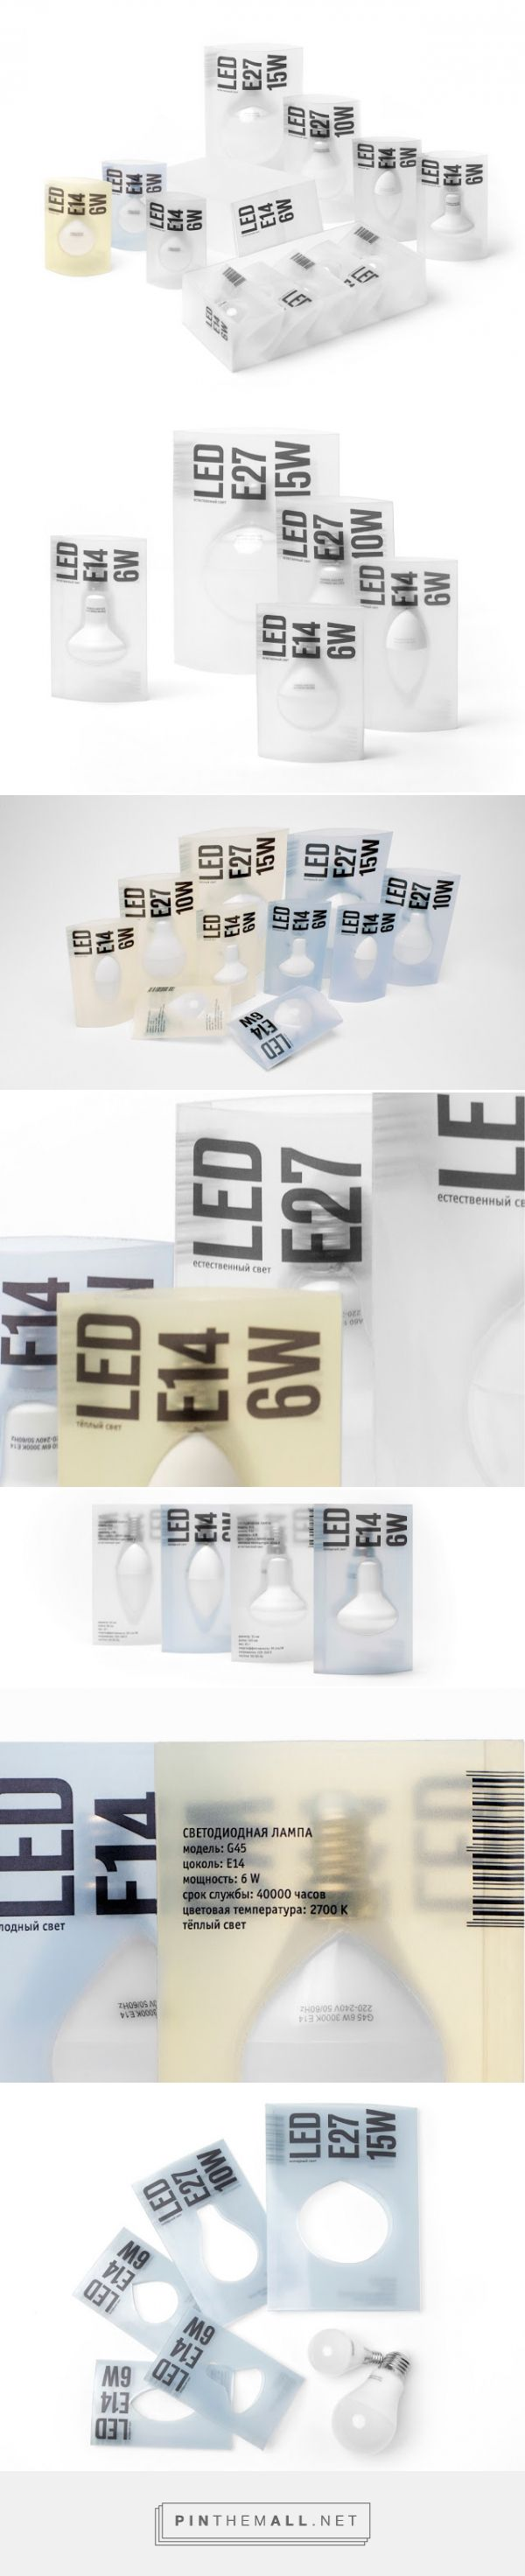 LED Light Bulbs concept packaging designed by Marina Volodina (Russia) - http://www.packagingoftheworld.com/2016/03/led-light-bulbs-student-project.html